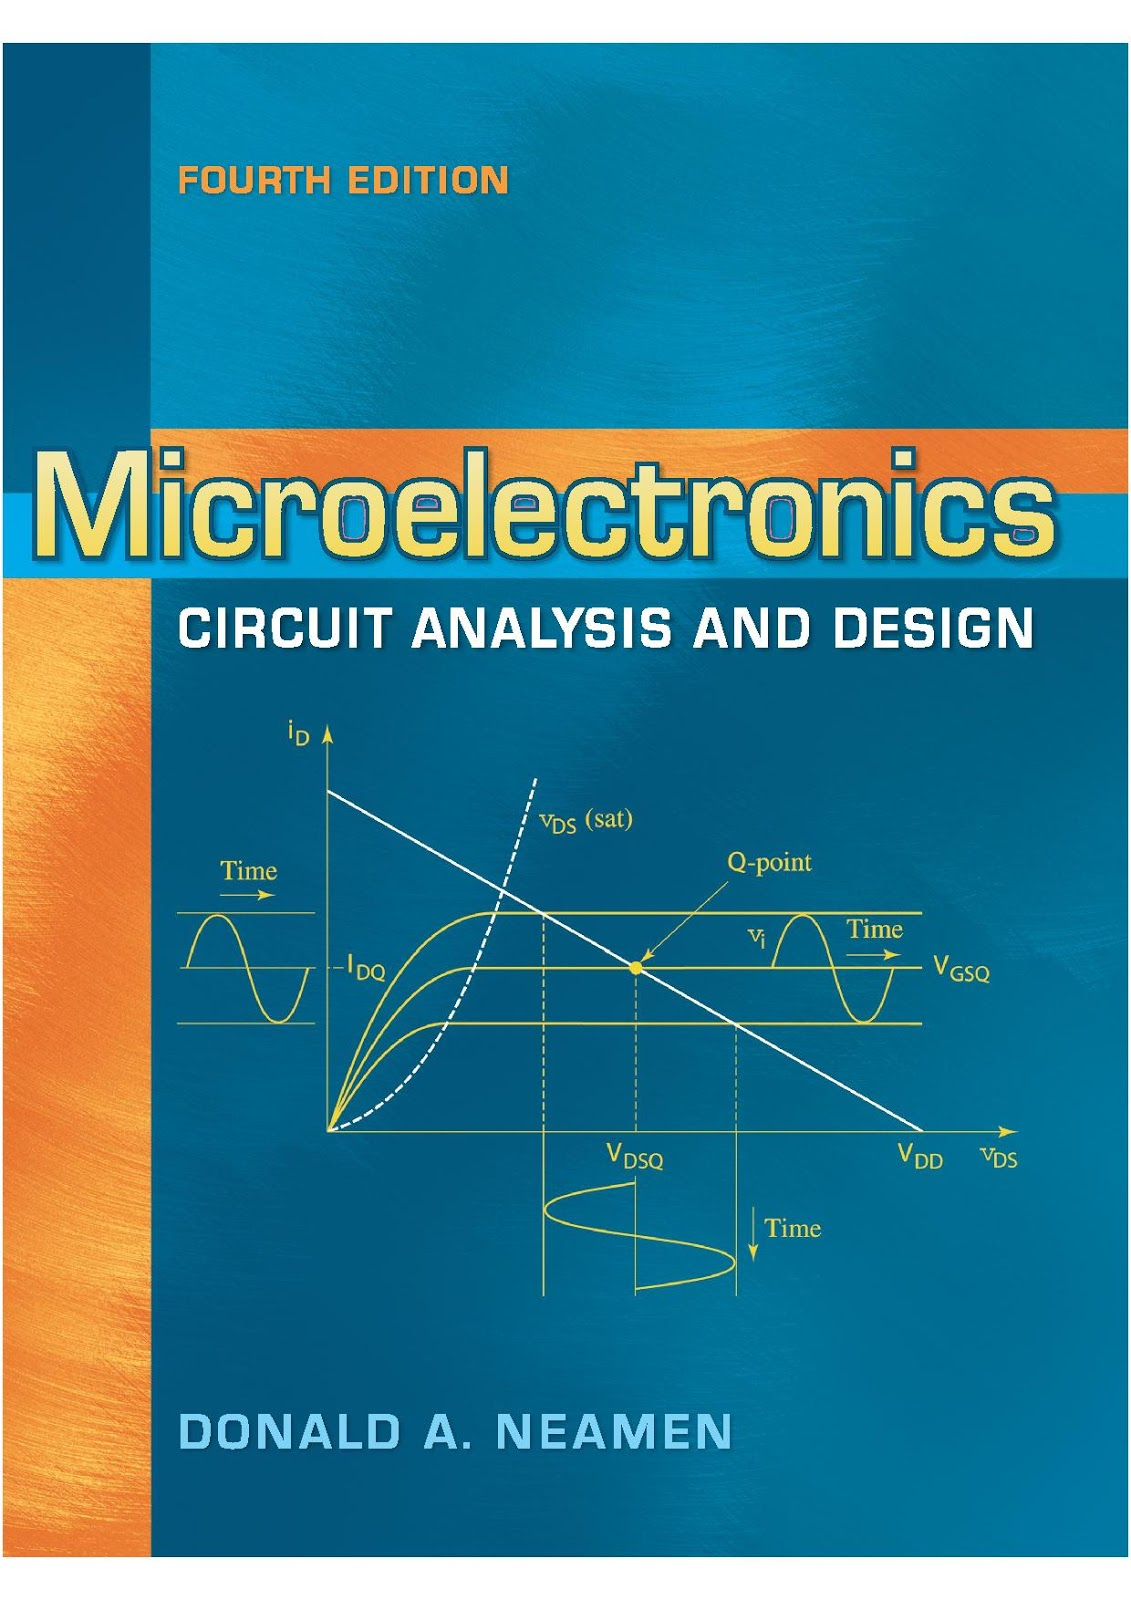 microelectronics circuit analysis and design (4th edition) by